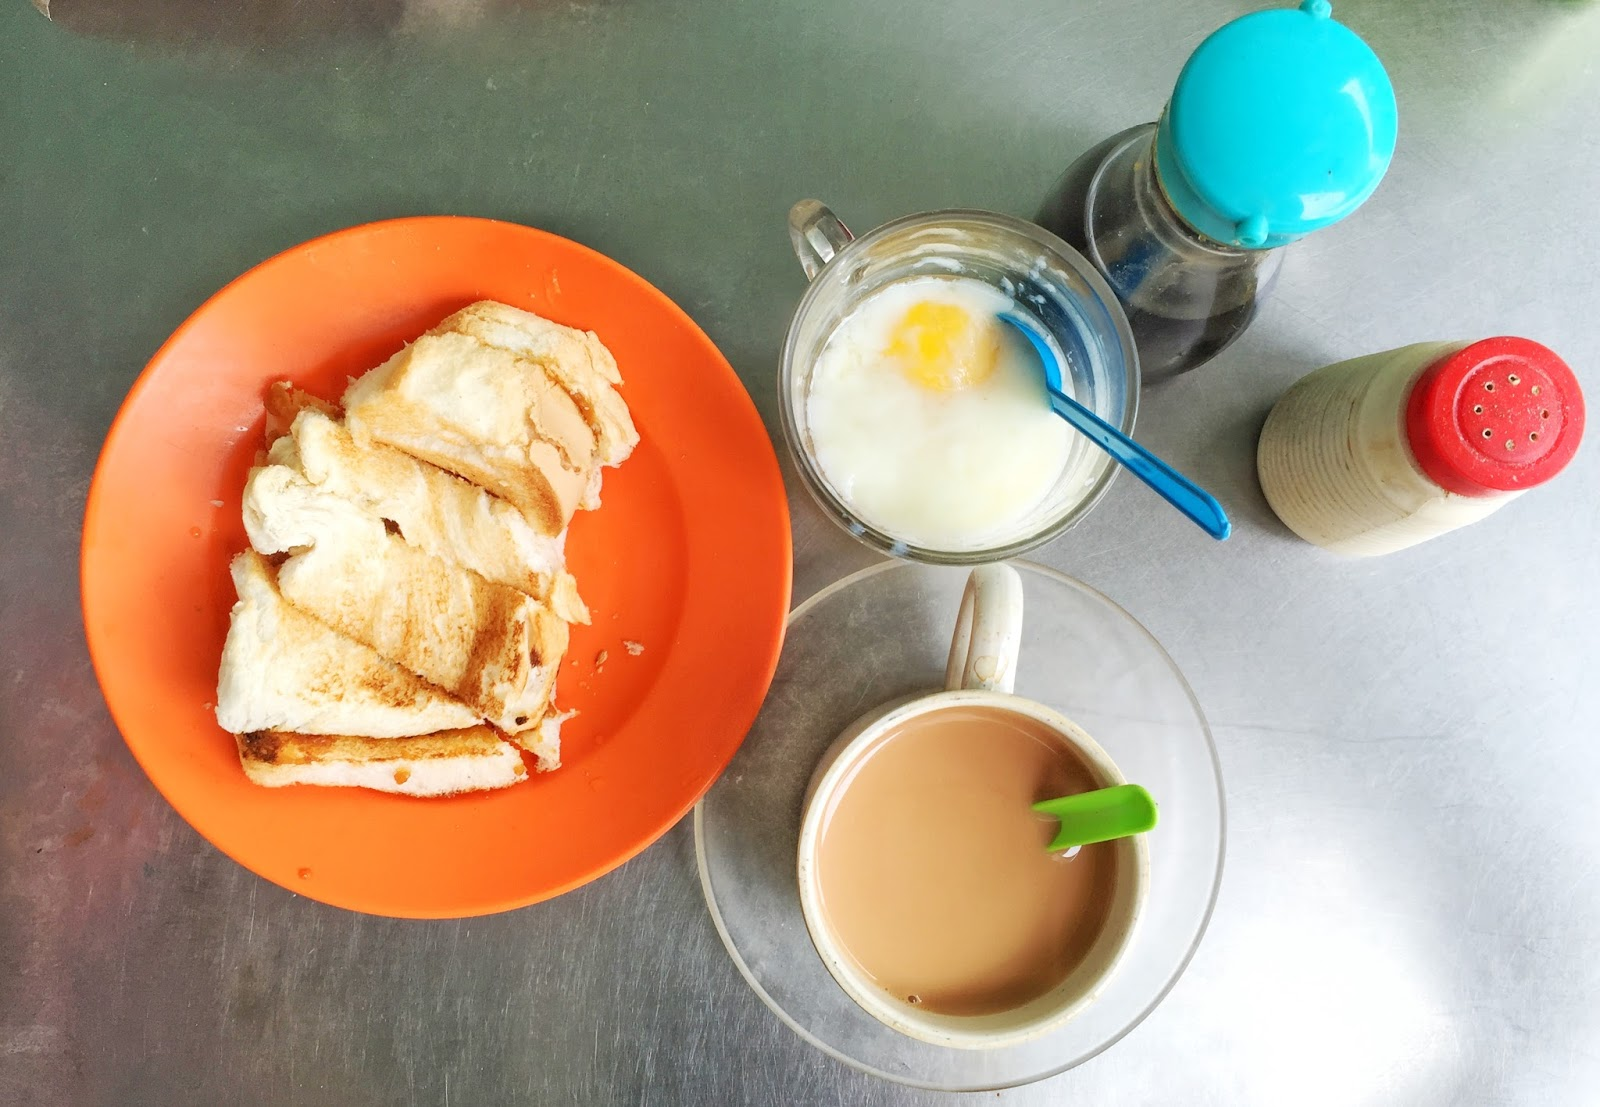 Penang - Toh Soon Coffee (多春茶室) Breakfast